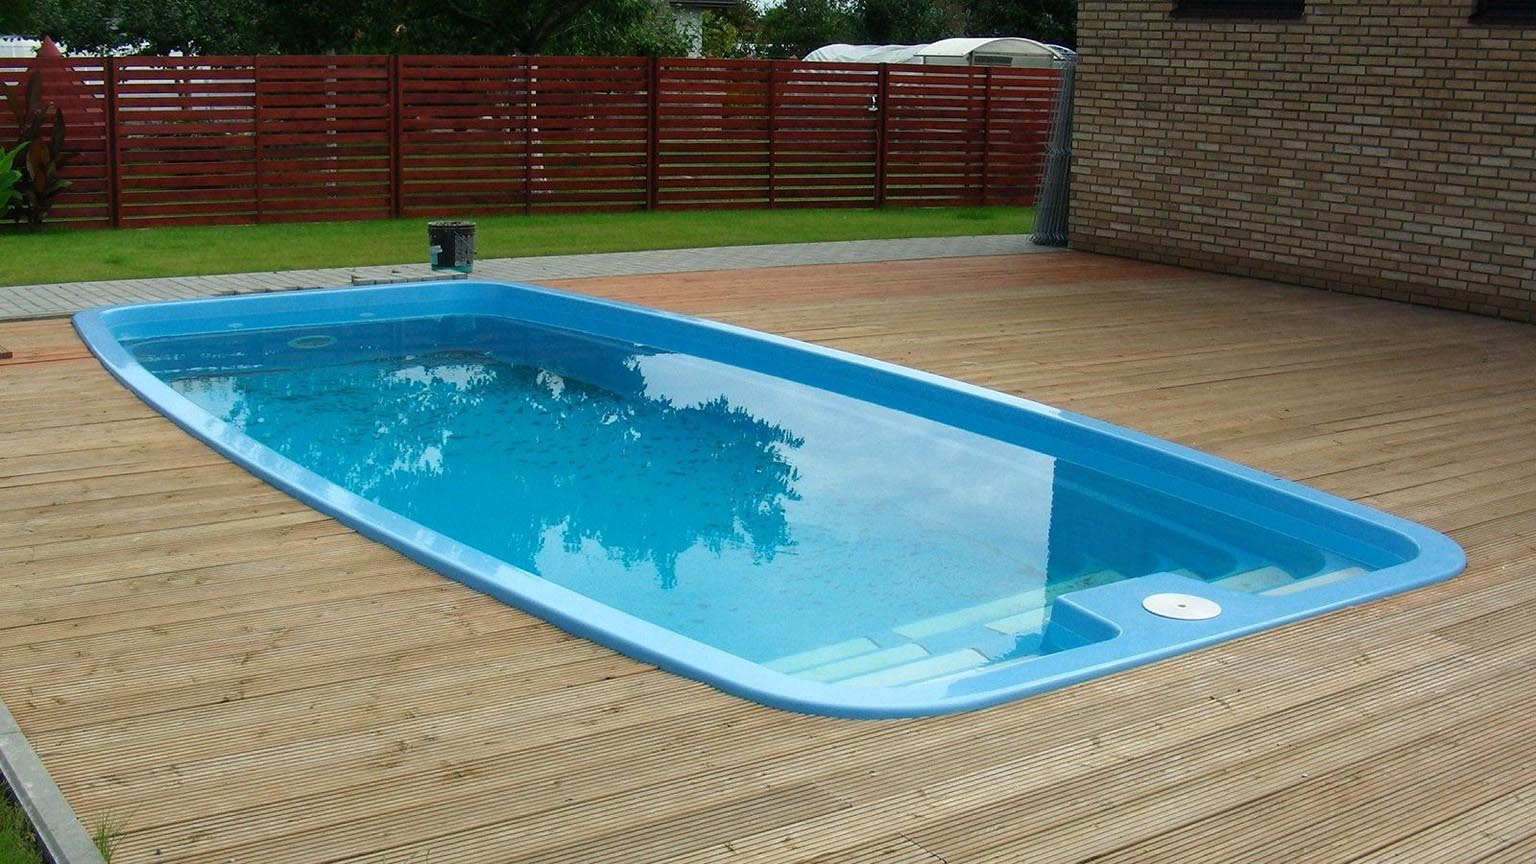 Small portable lap pools backyard design ideas Lap pool ideas